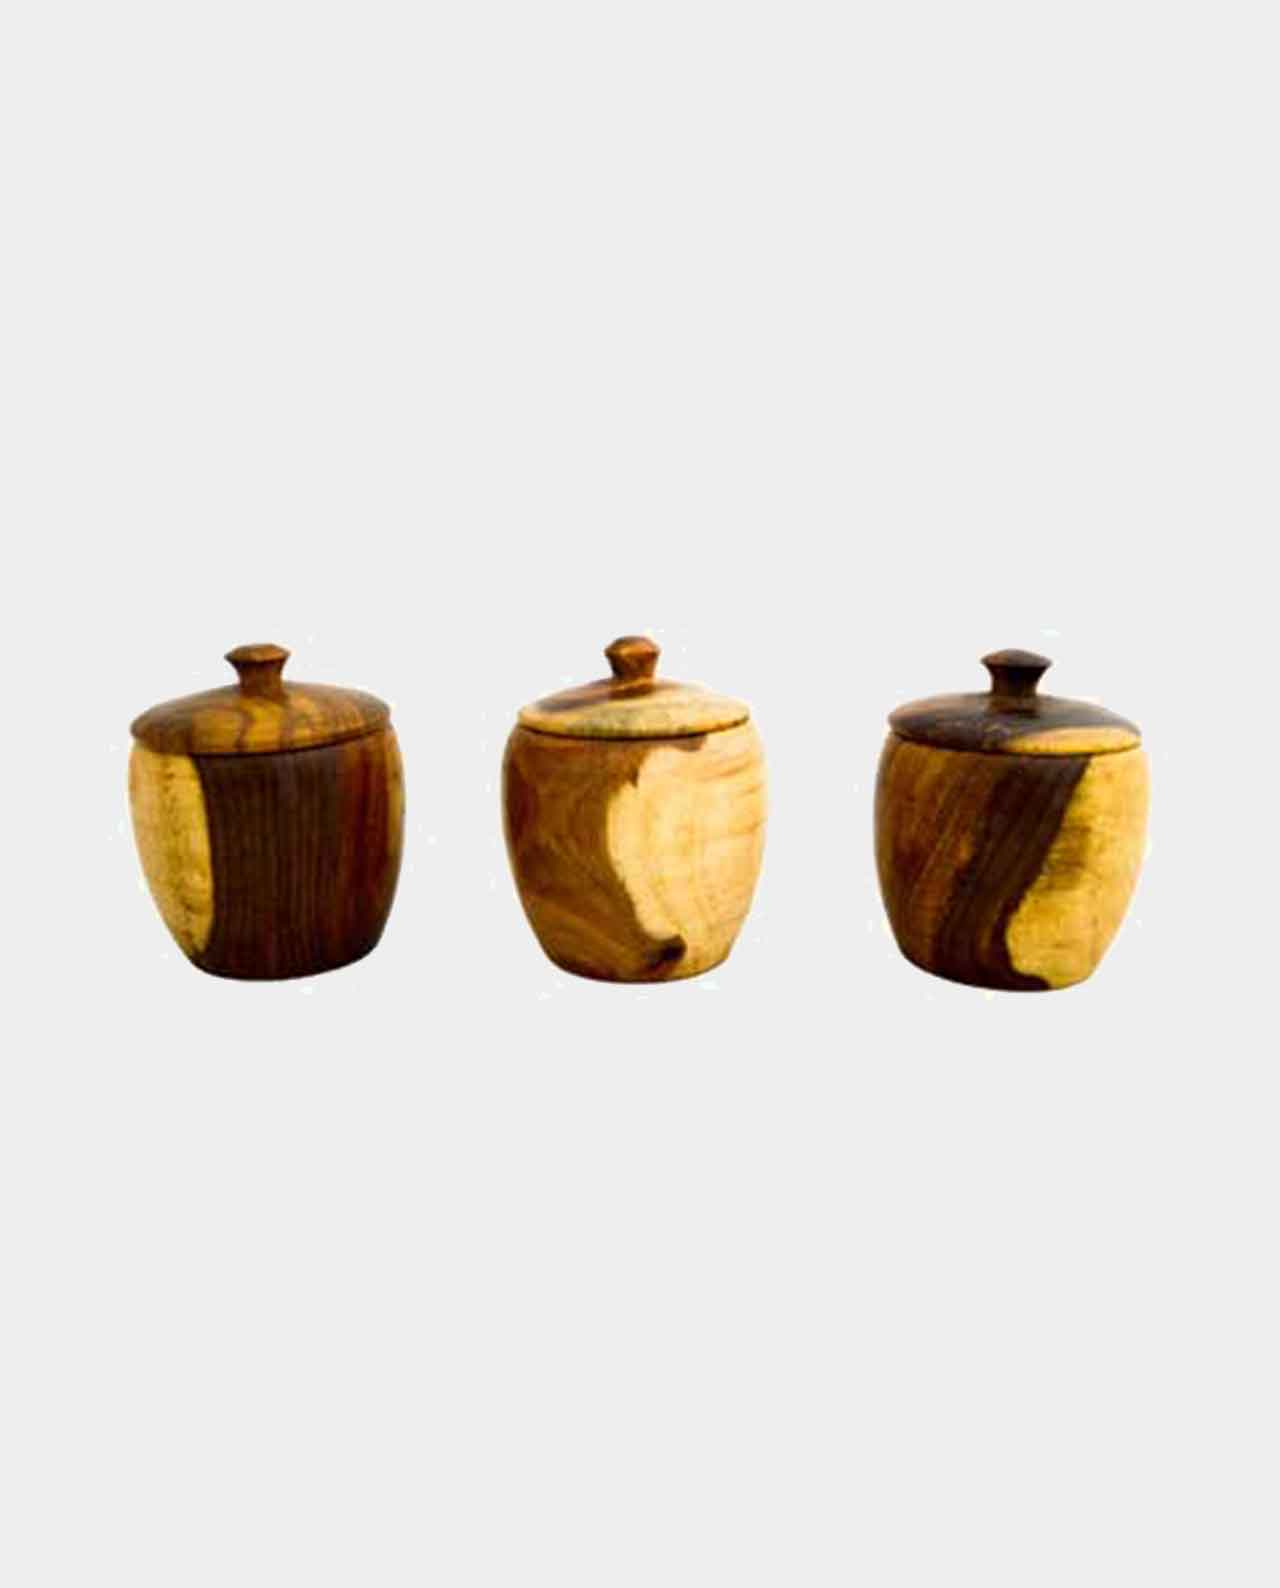 3 piece Spice jar with lid Handmade of Asersus wooden 9 cm